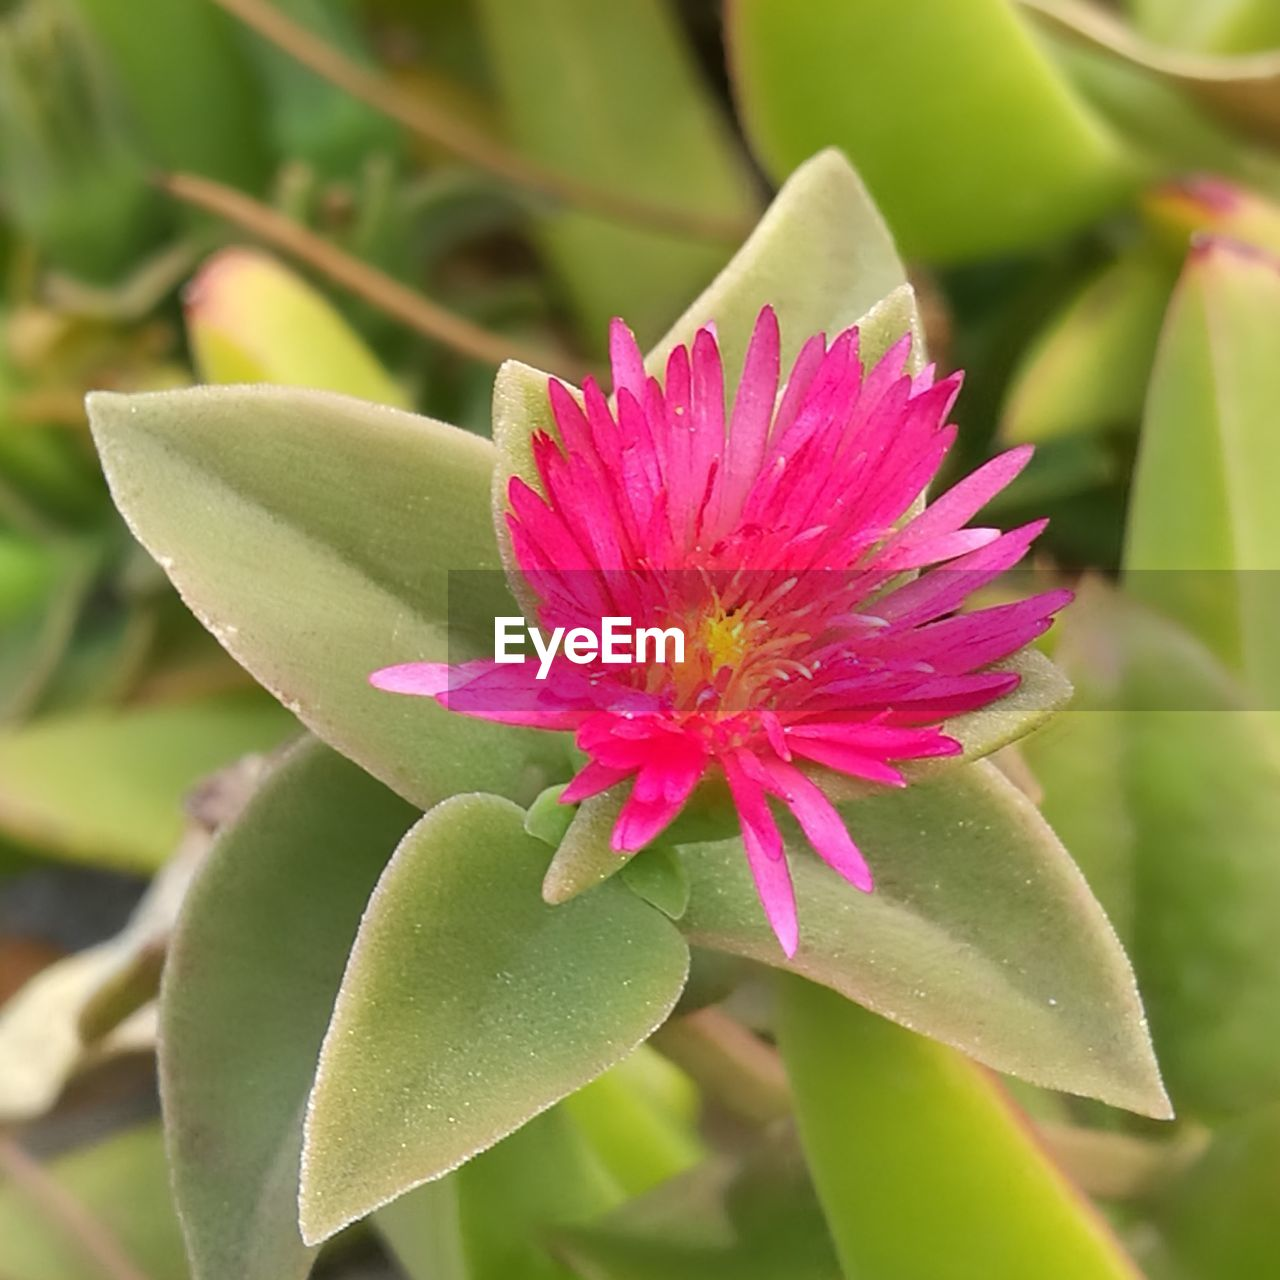 flower, beauty in nature, growth, fragility, petal, nature, flower head, freshness, green color, pink color, leaf, plant, close-up, day, blooming, no people, focus on foreground, outdoors